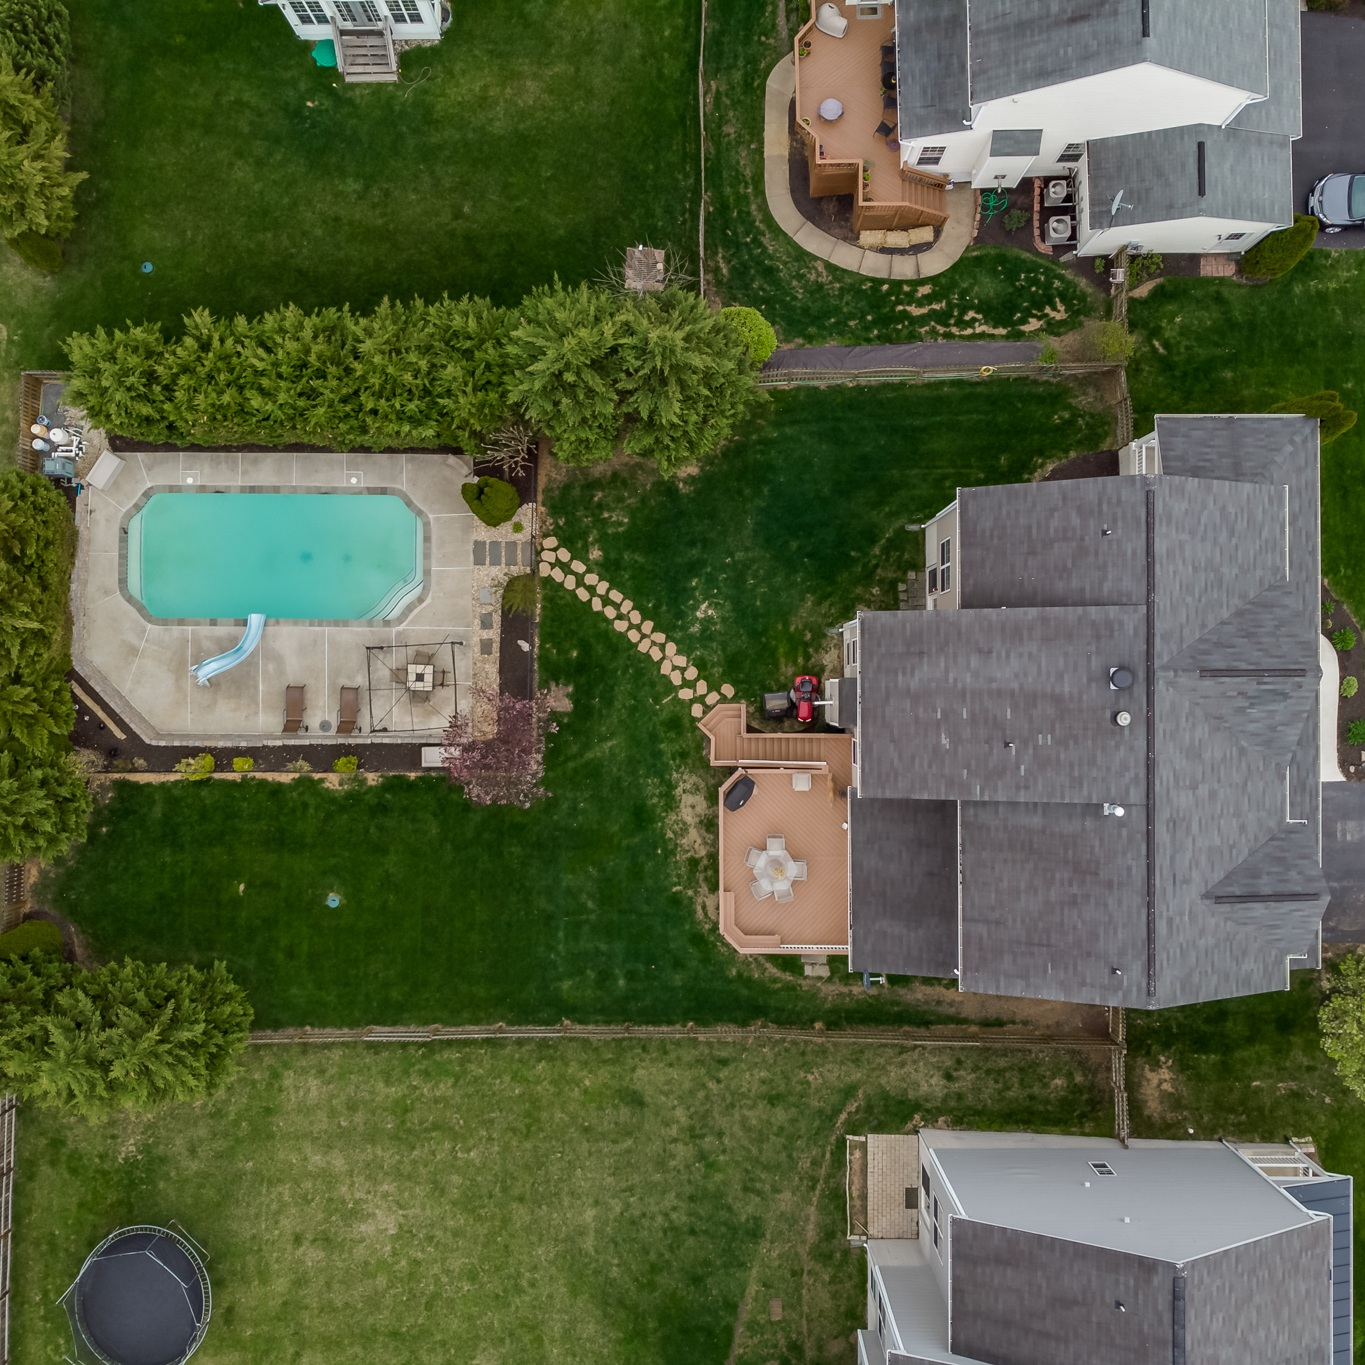 Real Estate Videography - Give your property the spotlight it deserves with services like our 60-second highlight video optimized for social media, aerial footage (where permitted), and full length home tour videos.